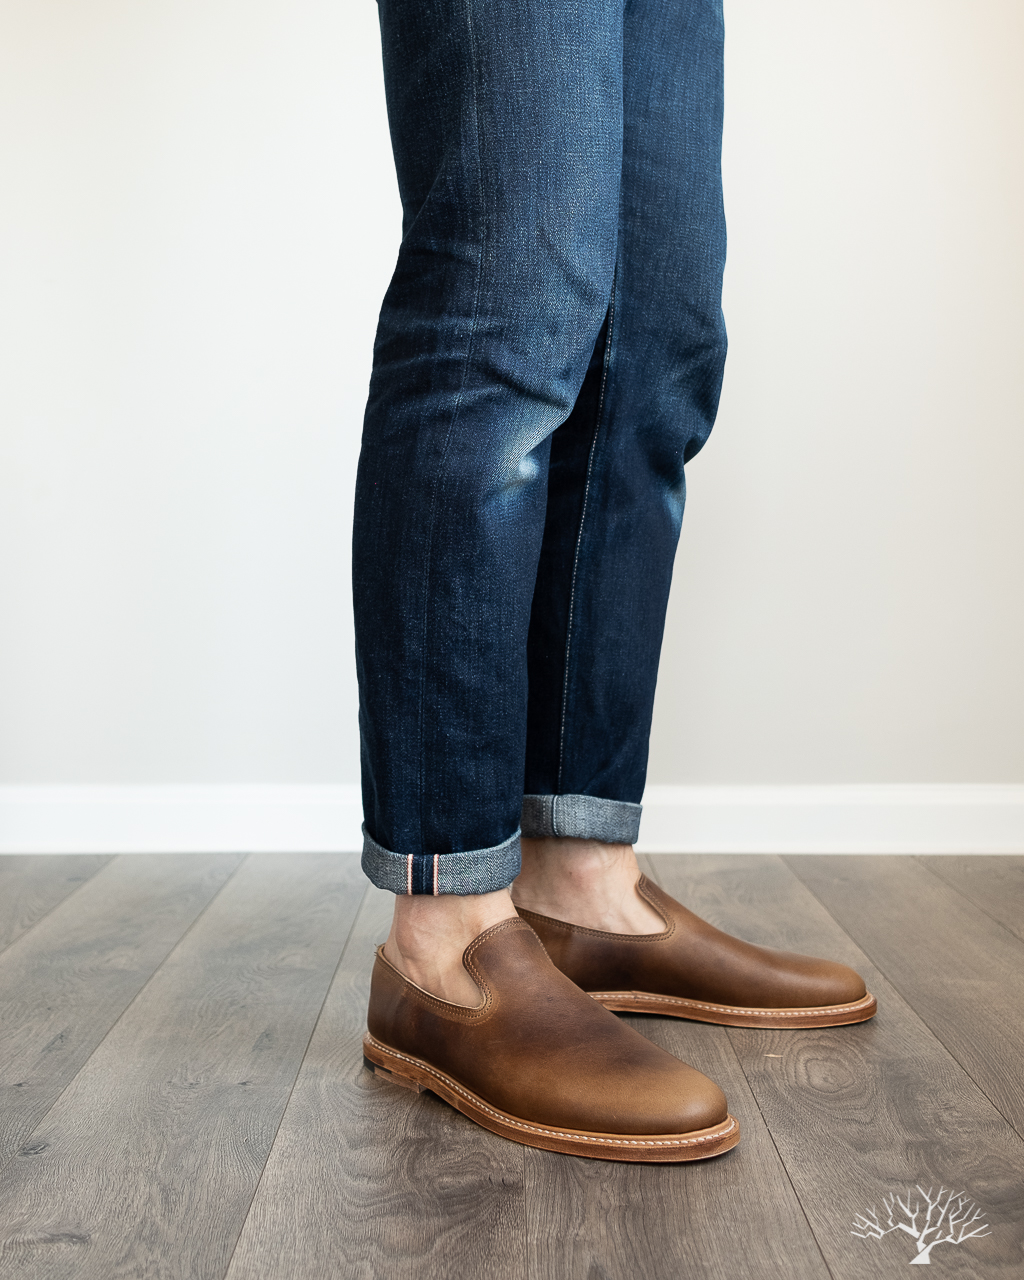 viberg camel oiled calf slippers styled with railcar denim